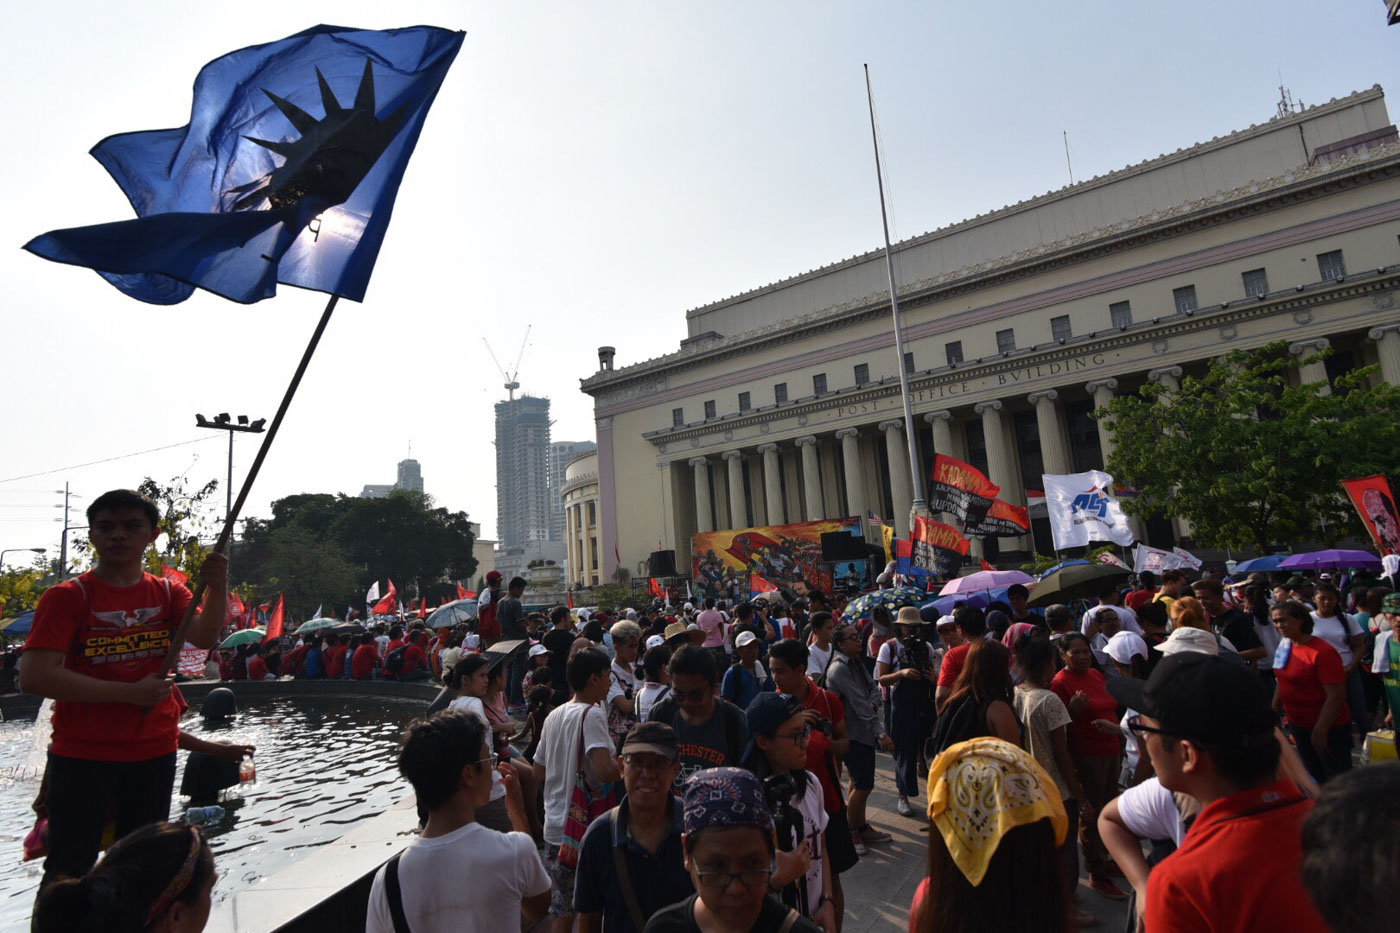 FIGHTING FOR LABOR RIGHTS. Protesters from various sectors walk together in a Labor Day protest march on May 1, 2017. Photo by LeAnne Jazul/Rappler